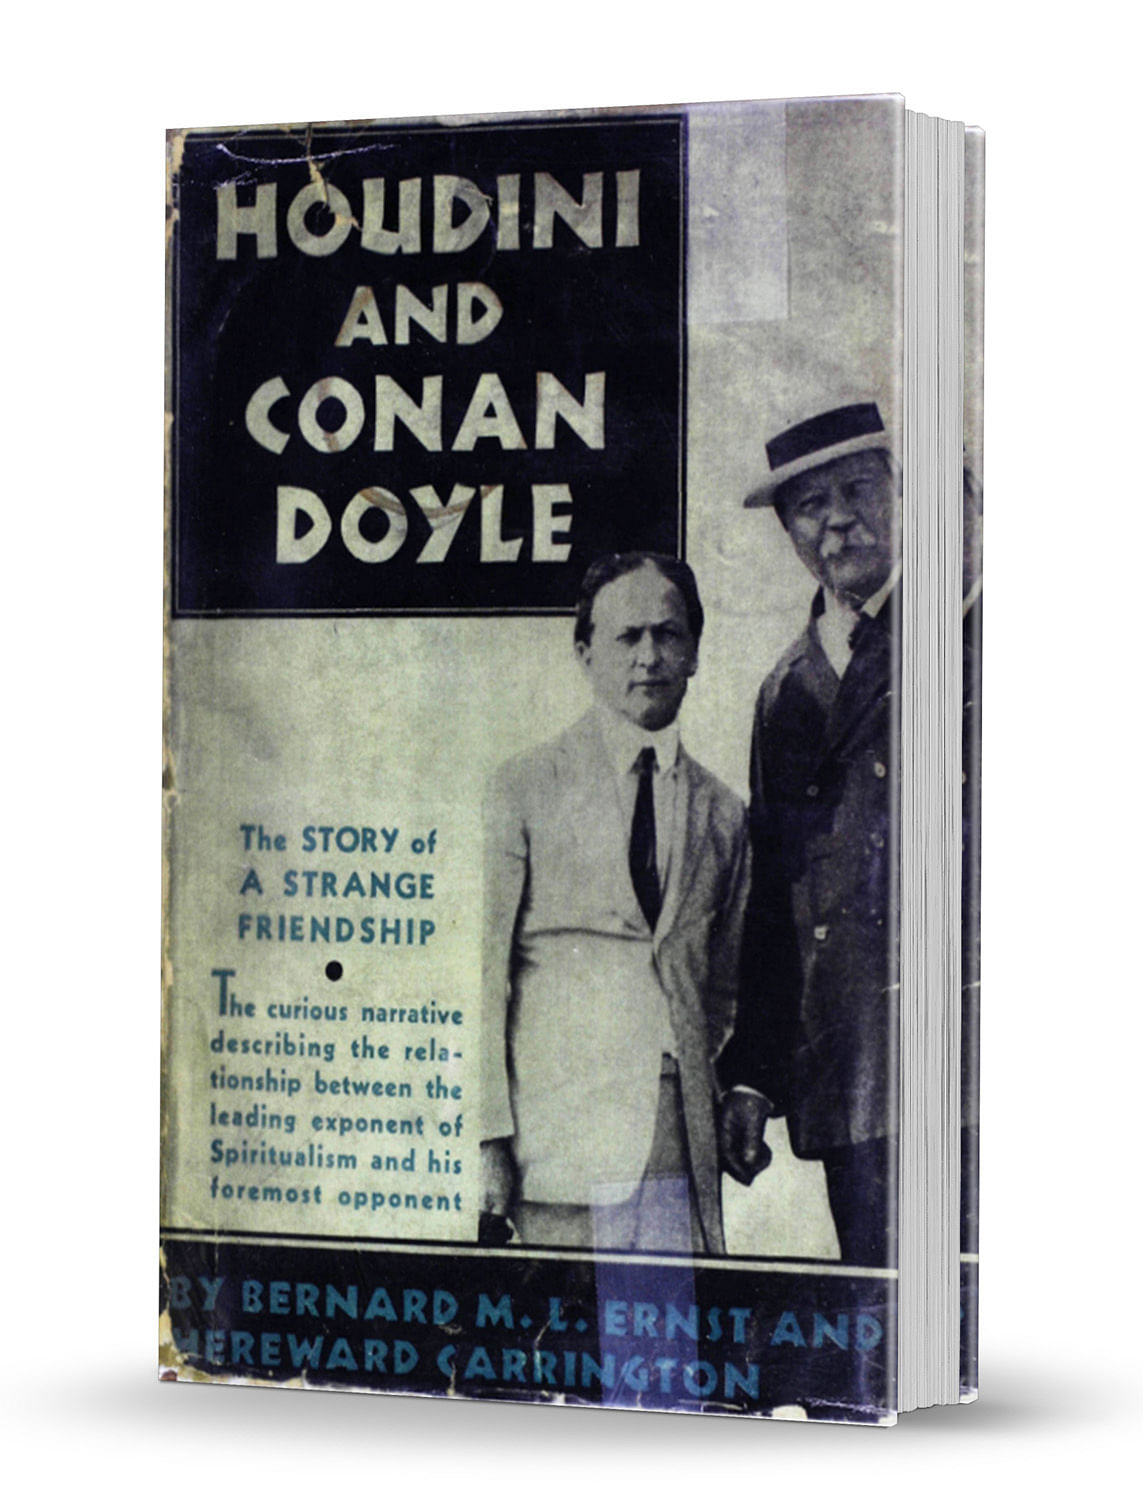 Houdini and Conan Doyle - magic